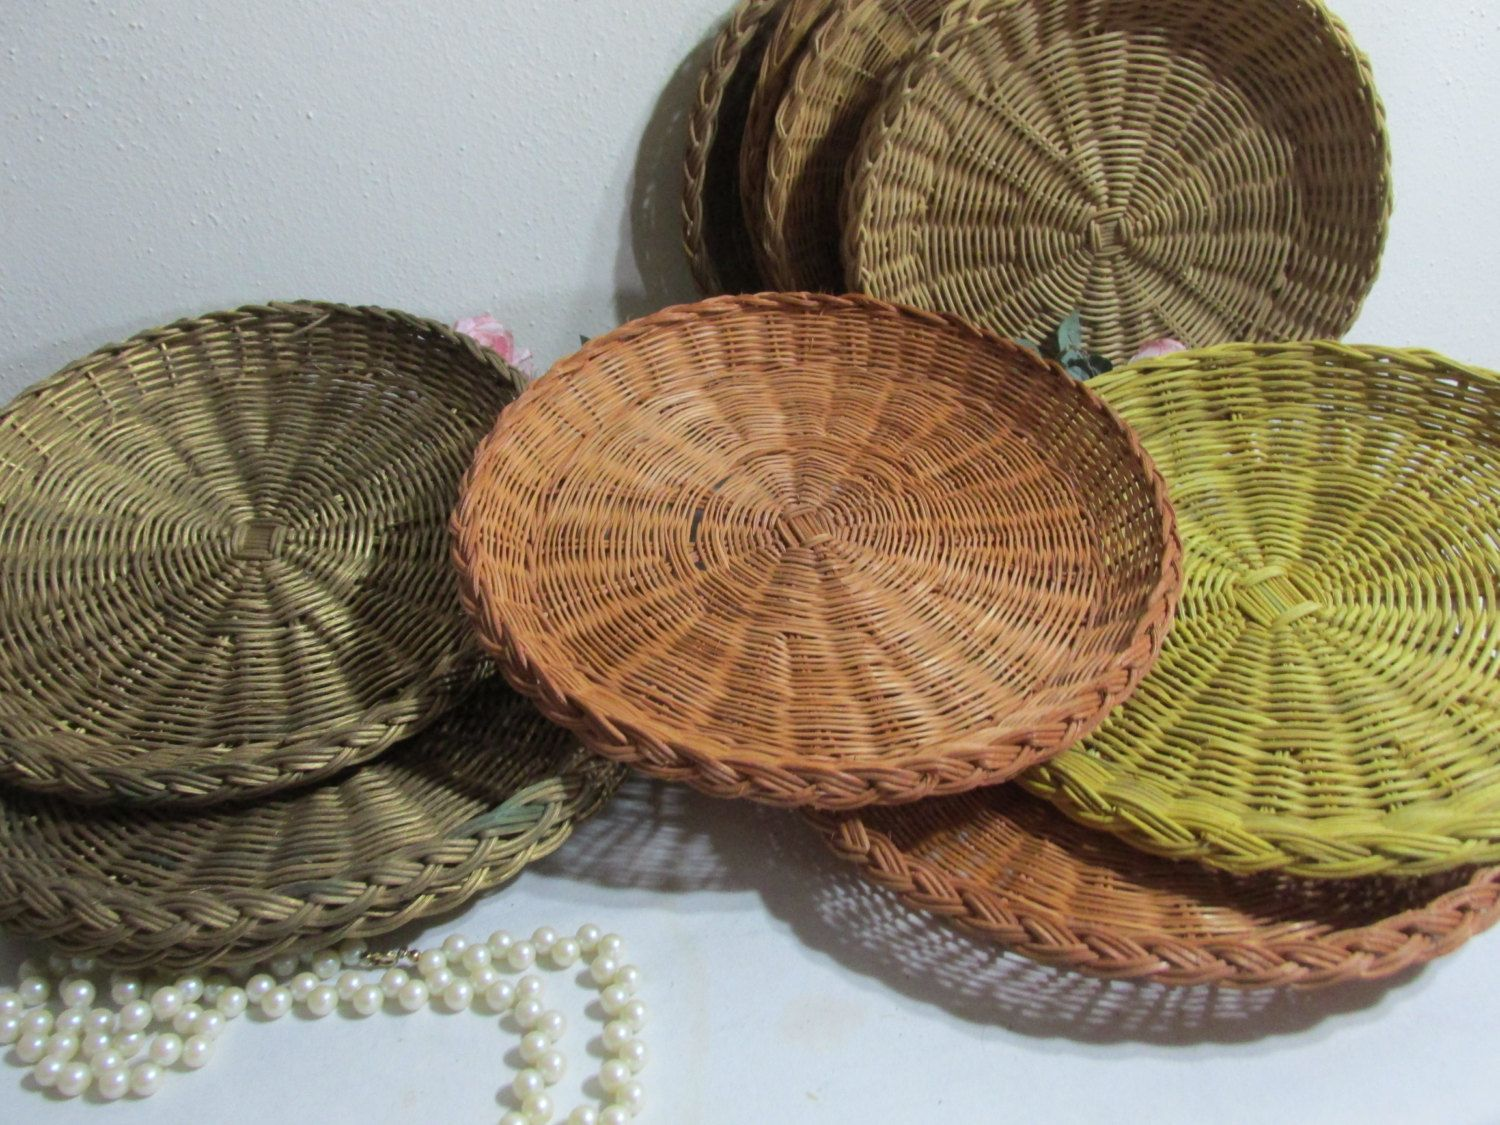 Wicker Paper Plate Holder Set of 15 in 2 Sizes by LuRuUniques on Etsy & Wicker Paper Plate Holder Set of 15 in 2 Sizes by LuRuUniques on ...